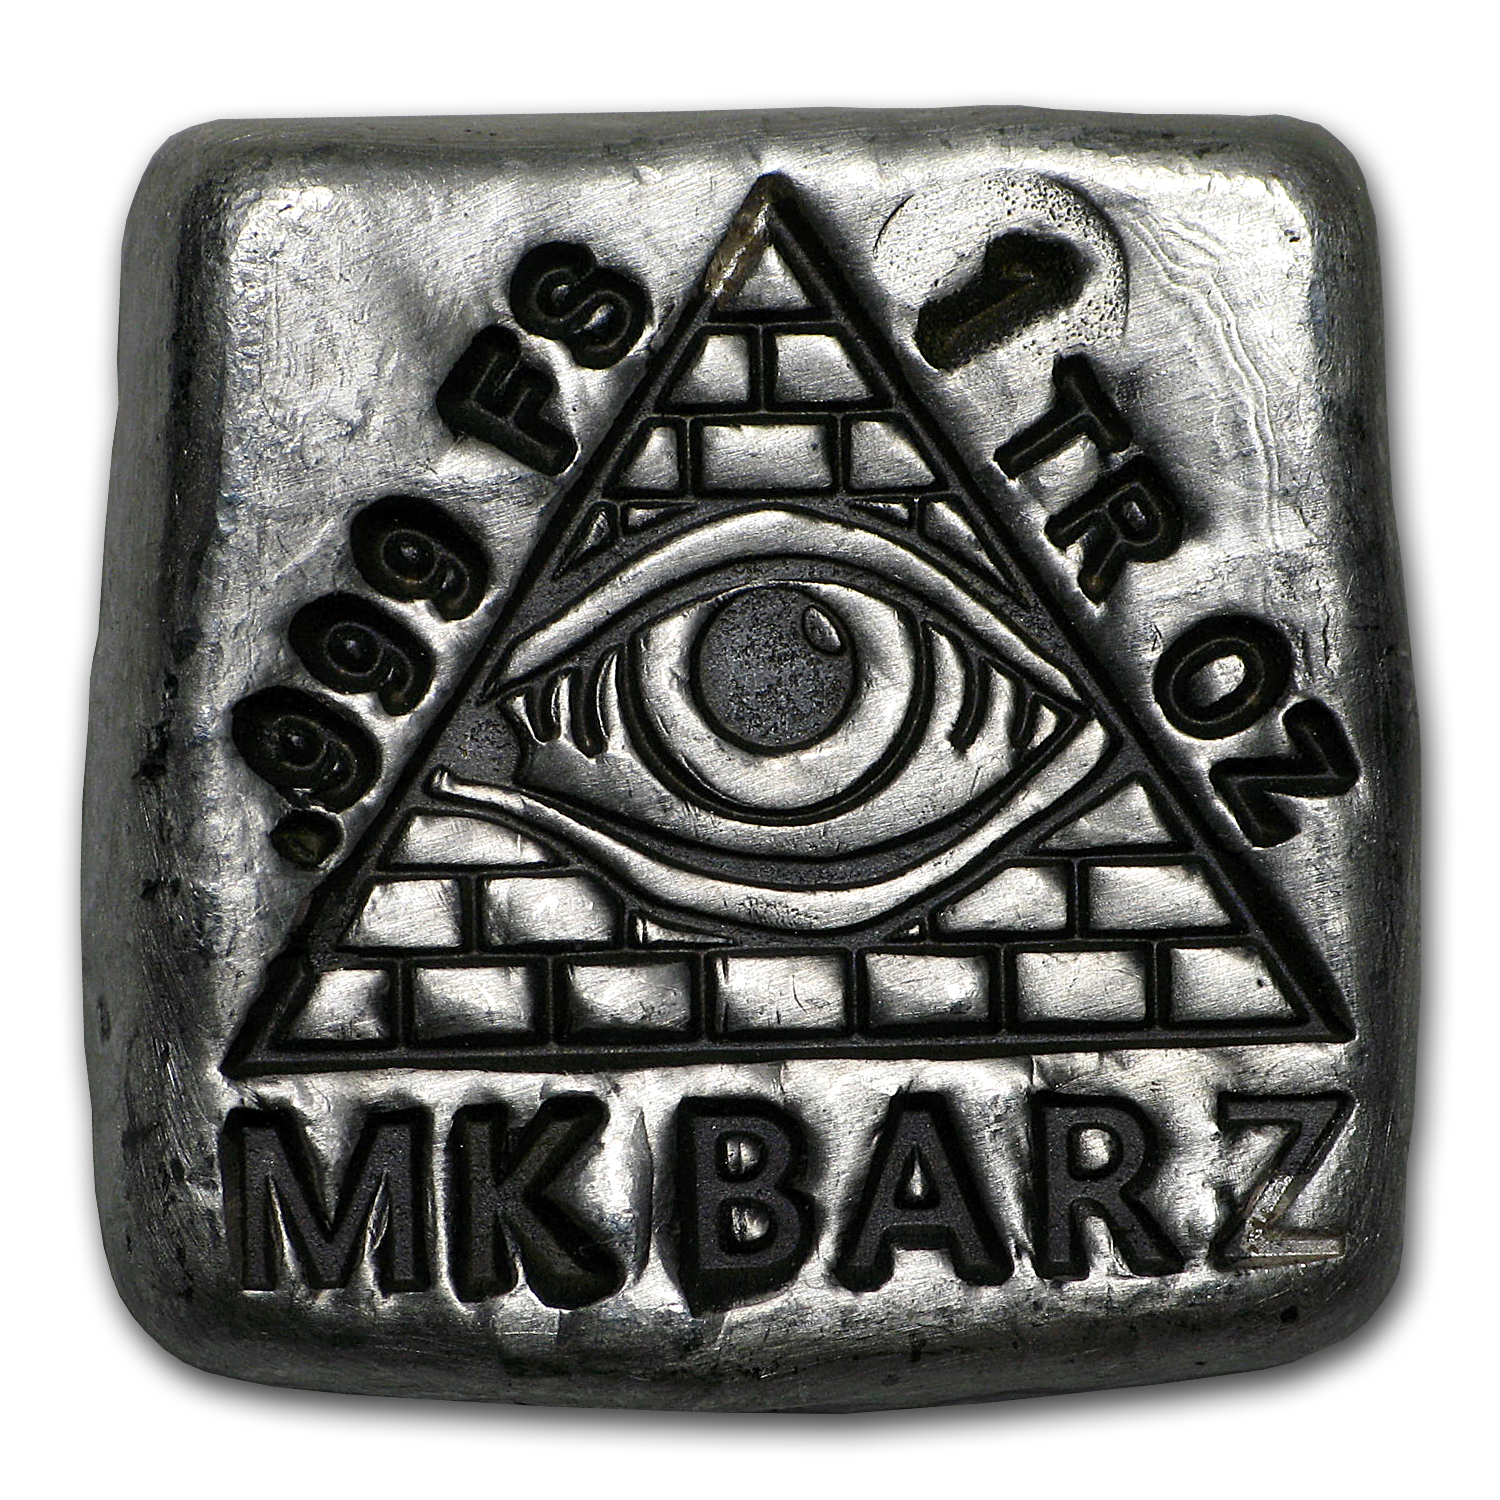 1 oz Silver Square - Mk Barz & Bullion (All-Seeing Eye)